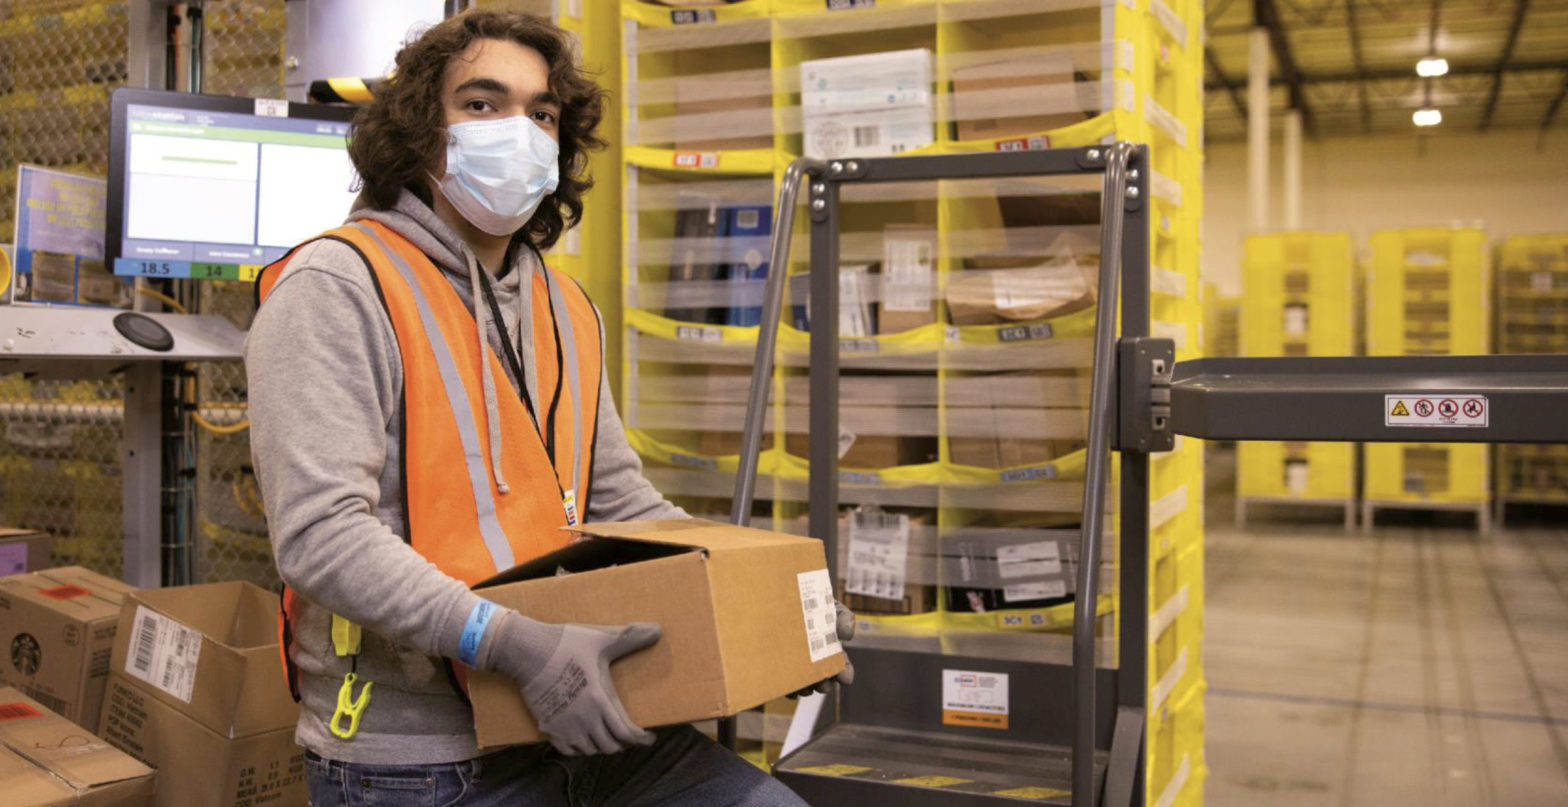 A person carrying a box in Amazon warehouse